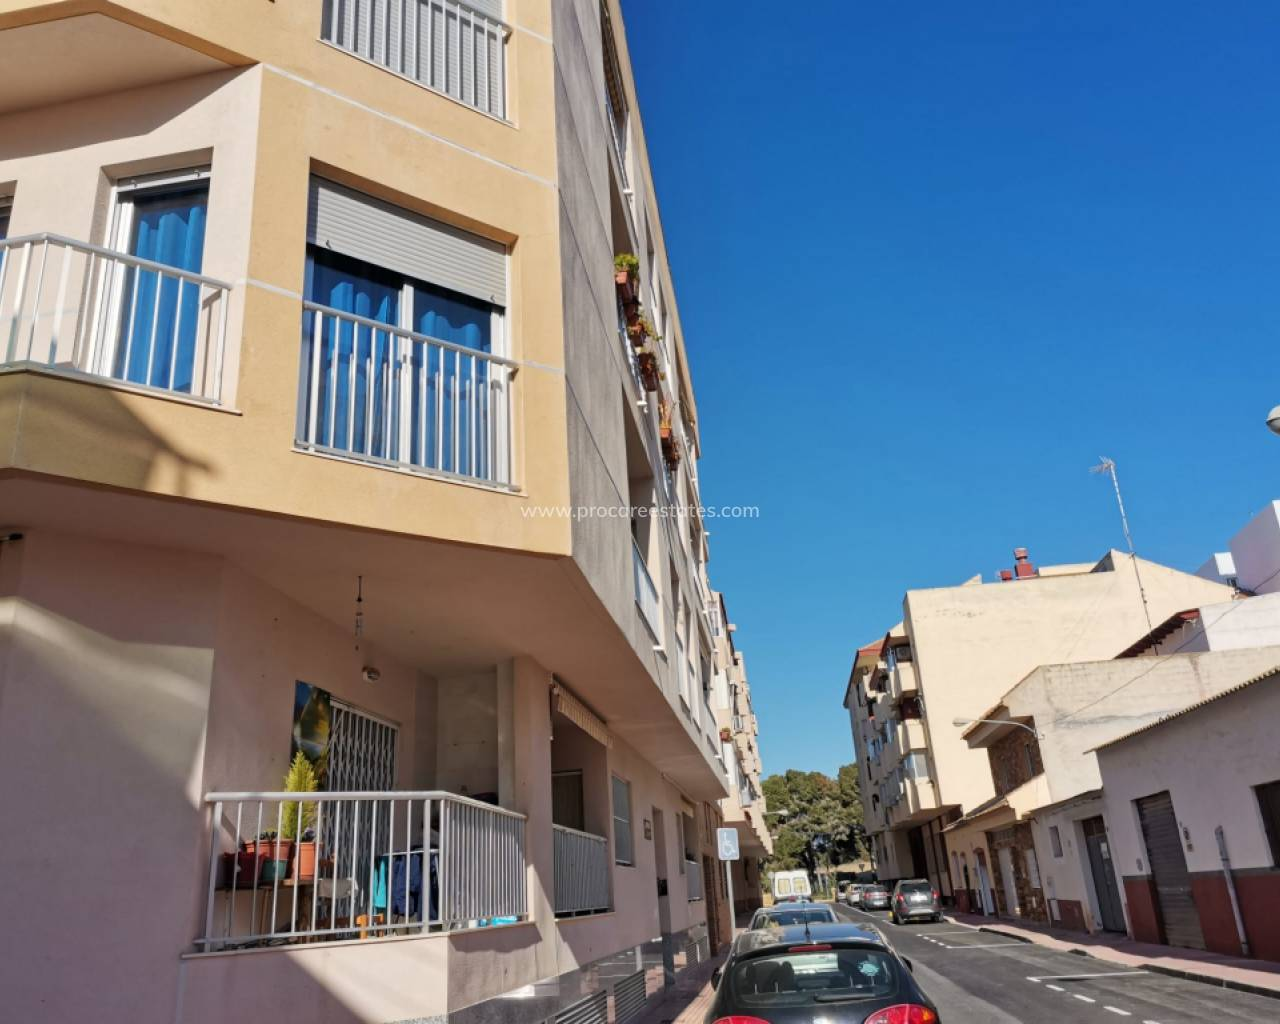 Appartement - Verkoop - Guardamar del Segura - Guardamar del Segura